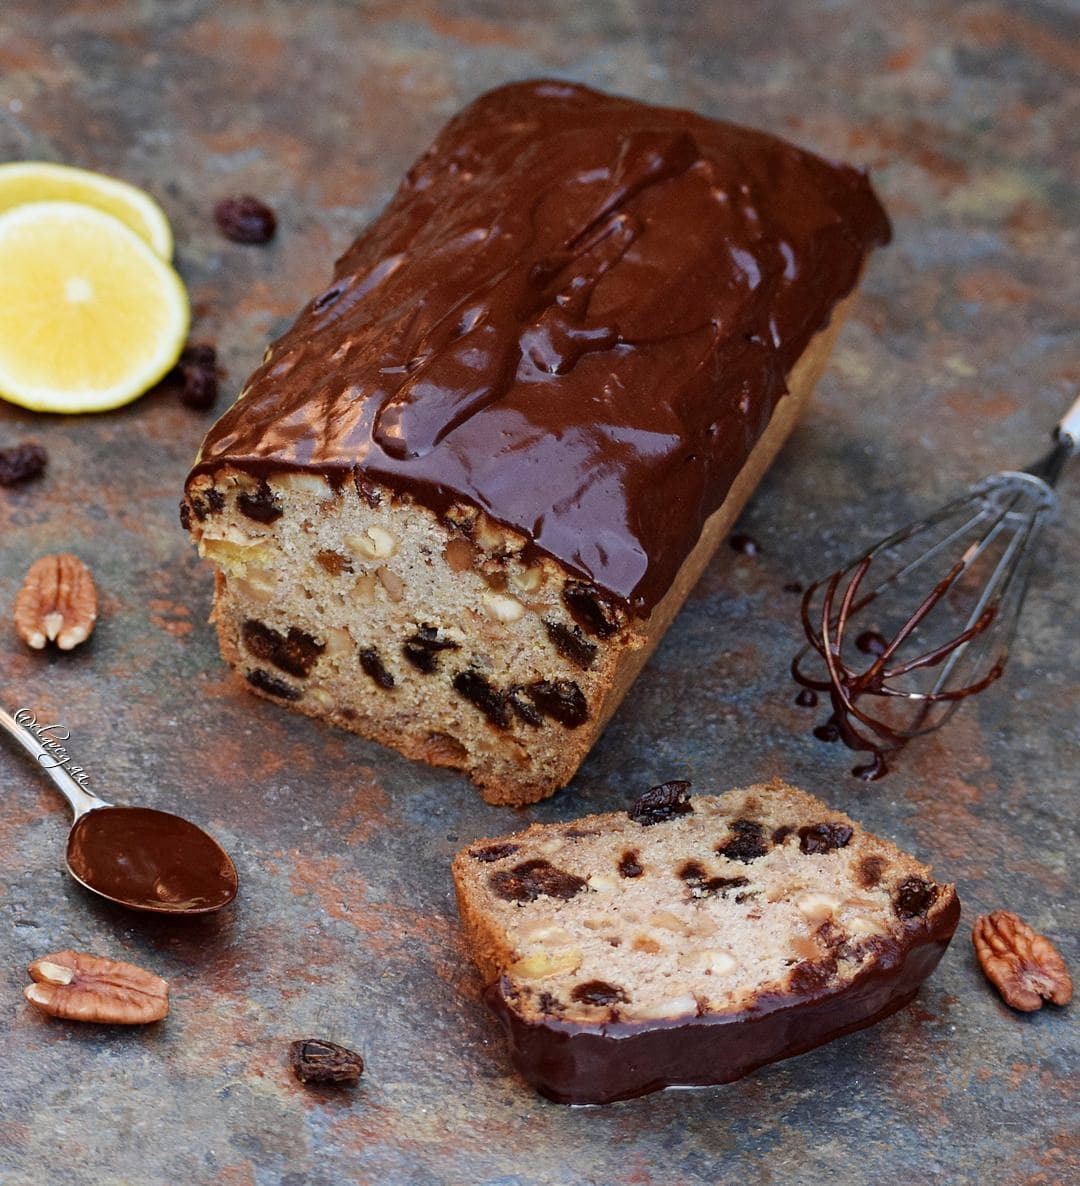 vegan fruit cake dairy free recipe which is boozy, moist and rich